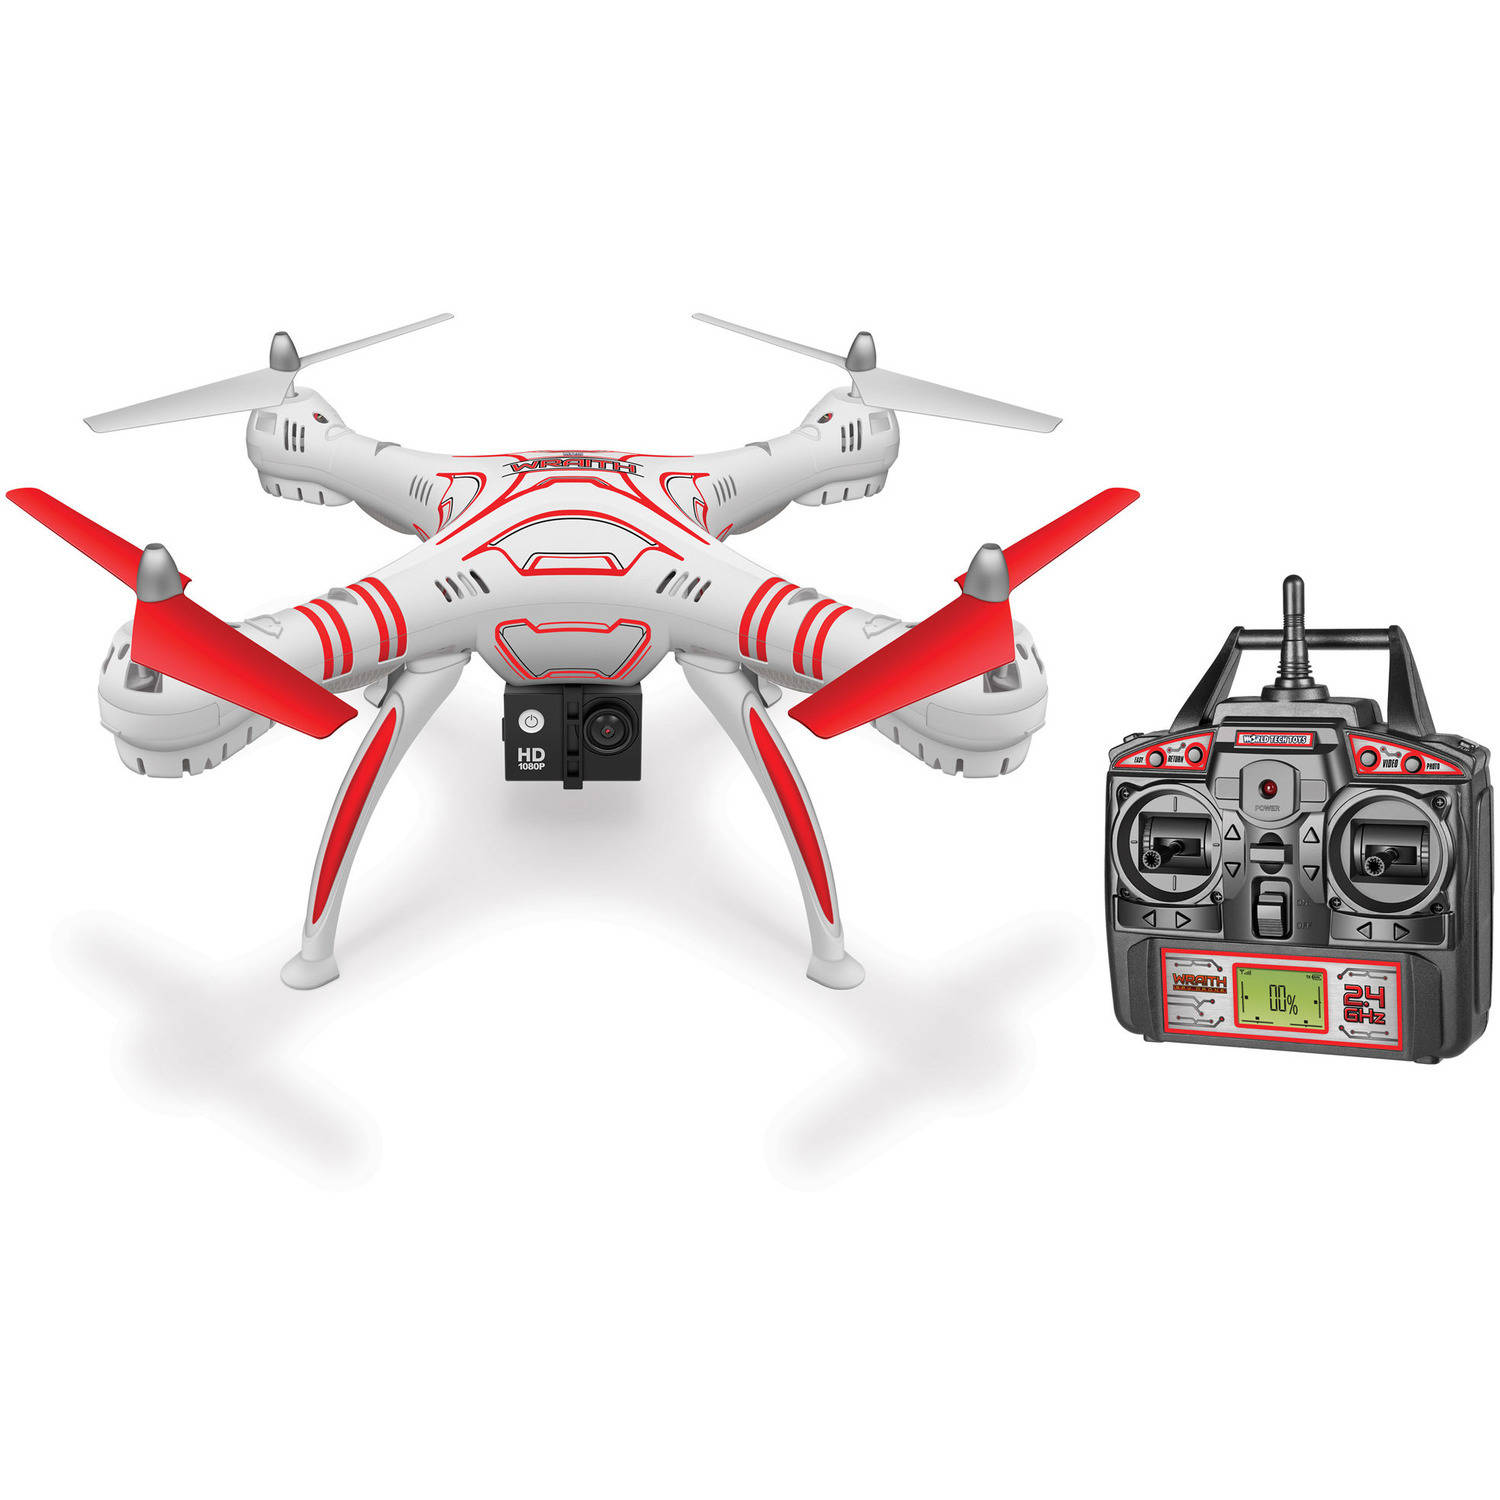 Wraith SPY Drone 4.5-Channel 1080p HD Video Camera 2.4GHz R C Quadcopter by WORLD TECH ELITE